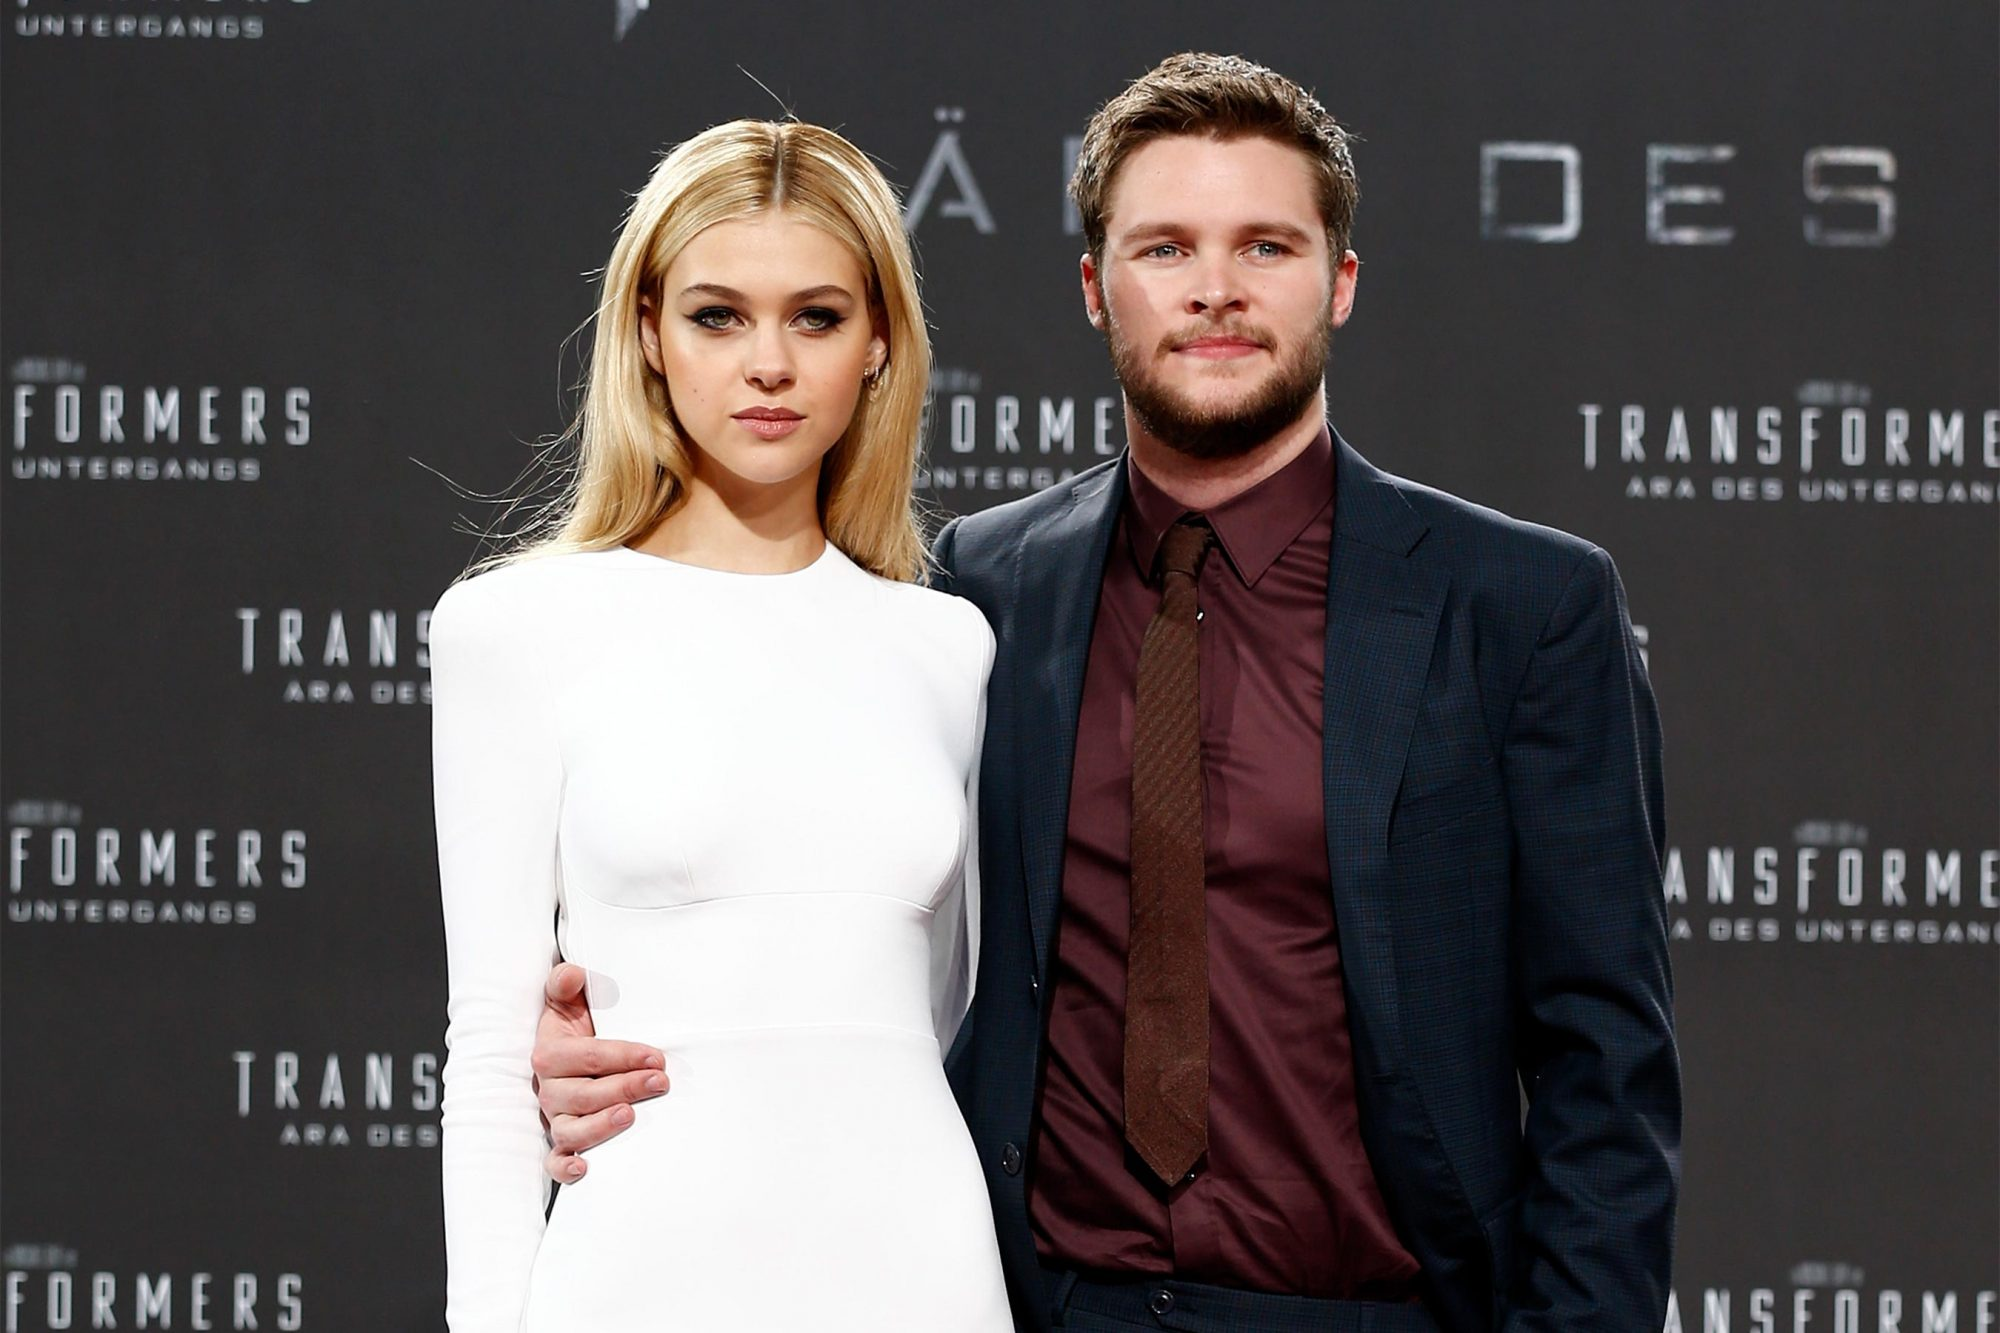 BERLIN, GERMANY - JUNE 29: Nicola Peltz and Jack Reynor attend the european premiere of 'Transformers: Age of Extinction' (german title: 'Transformers - Aera des Untergangs') at Sony Centre on June 29, 2014 in Berlin, Germany. (Photo by Andreas Rentz/Getty Images for Paramount Pictures)